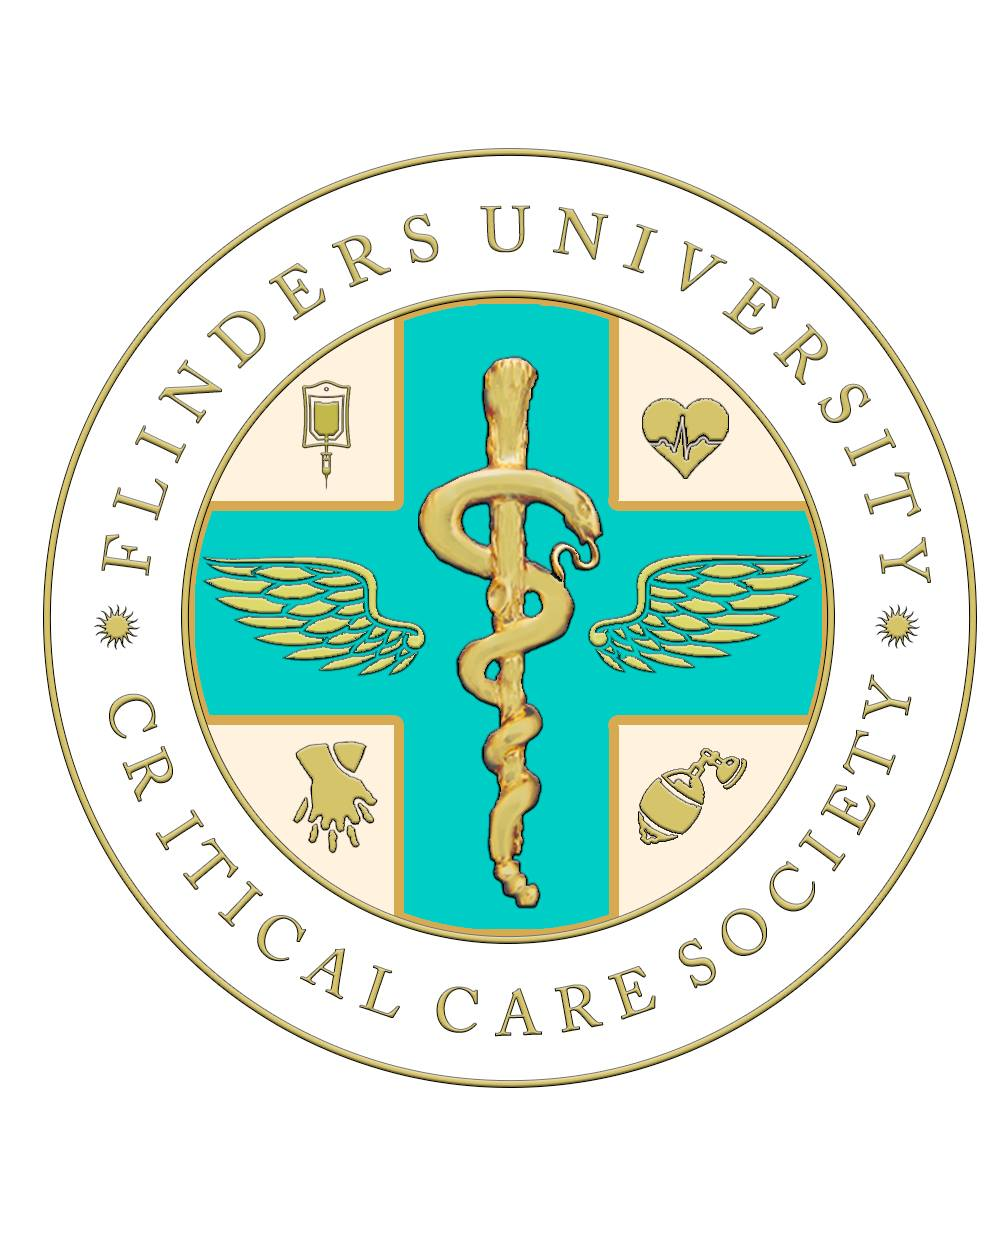 Critical Care Crest, low res.jpg